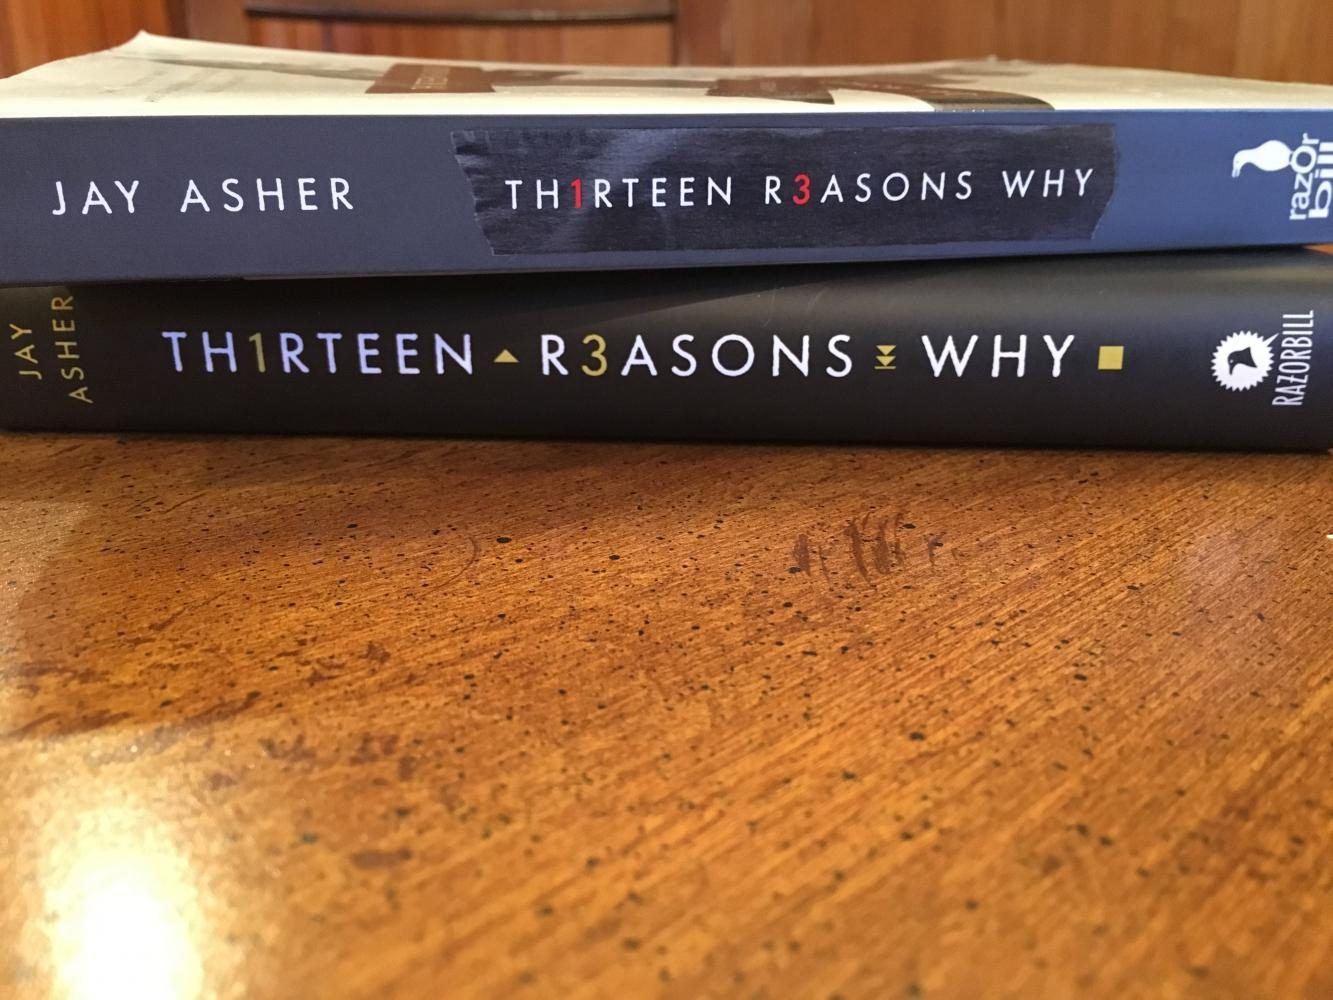 13+Reasons+Why%3A+The+best-selling+novel+turns+10+